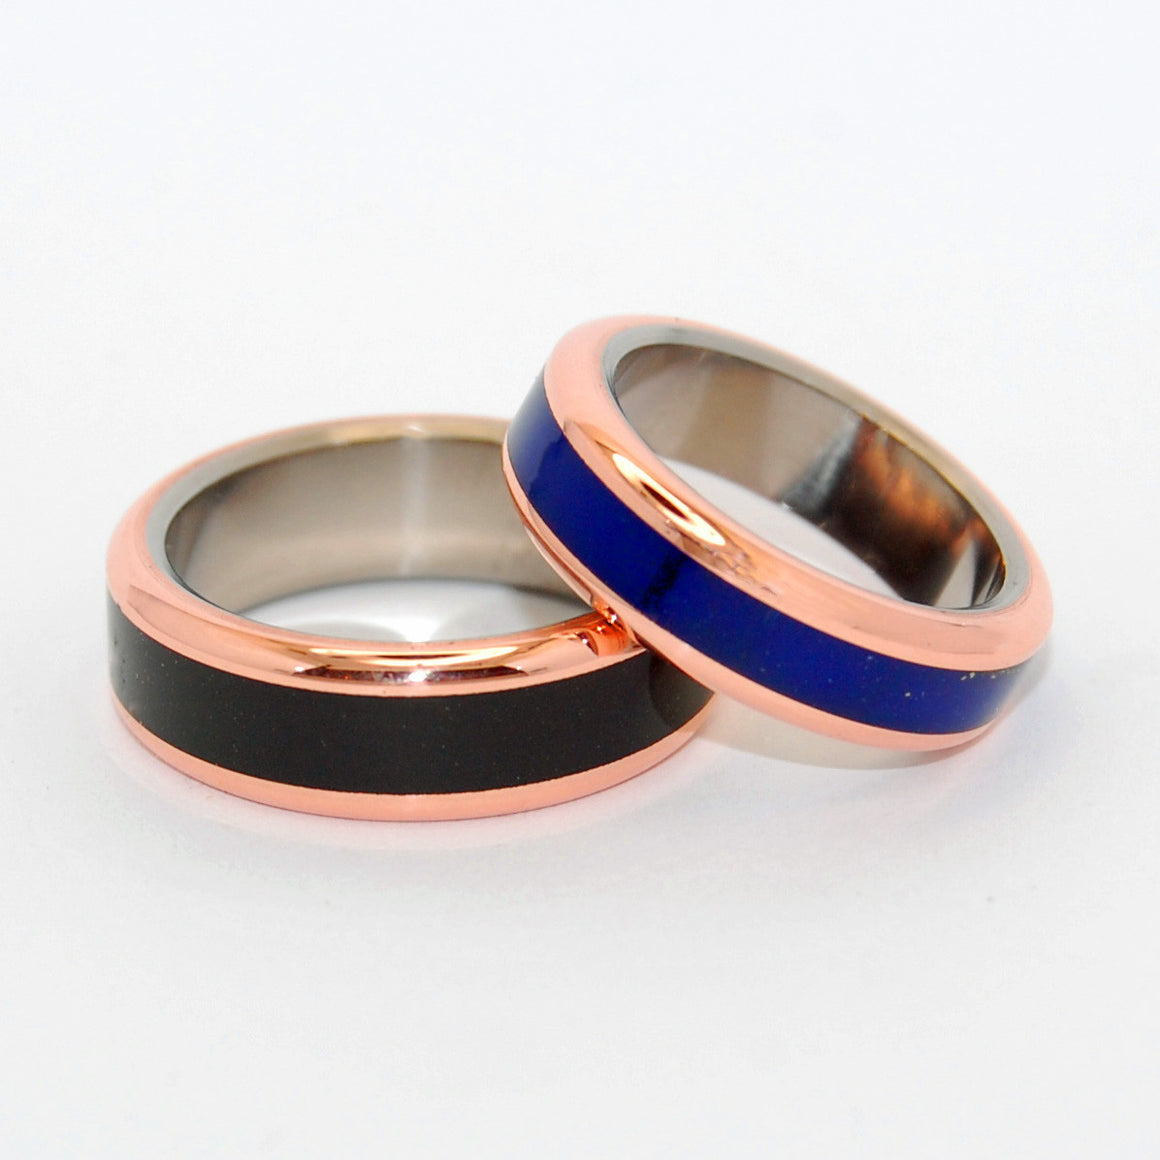 The Body of Heaven In His Clearness | Copper and Stone - Titanium Wedding Ring Set